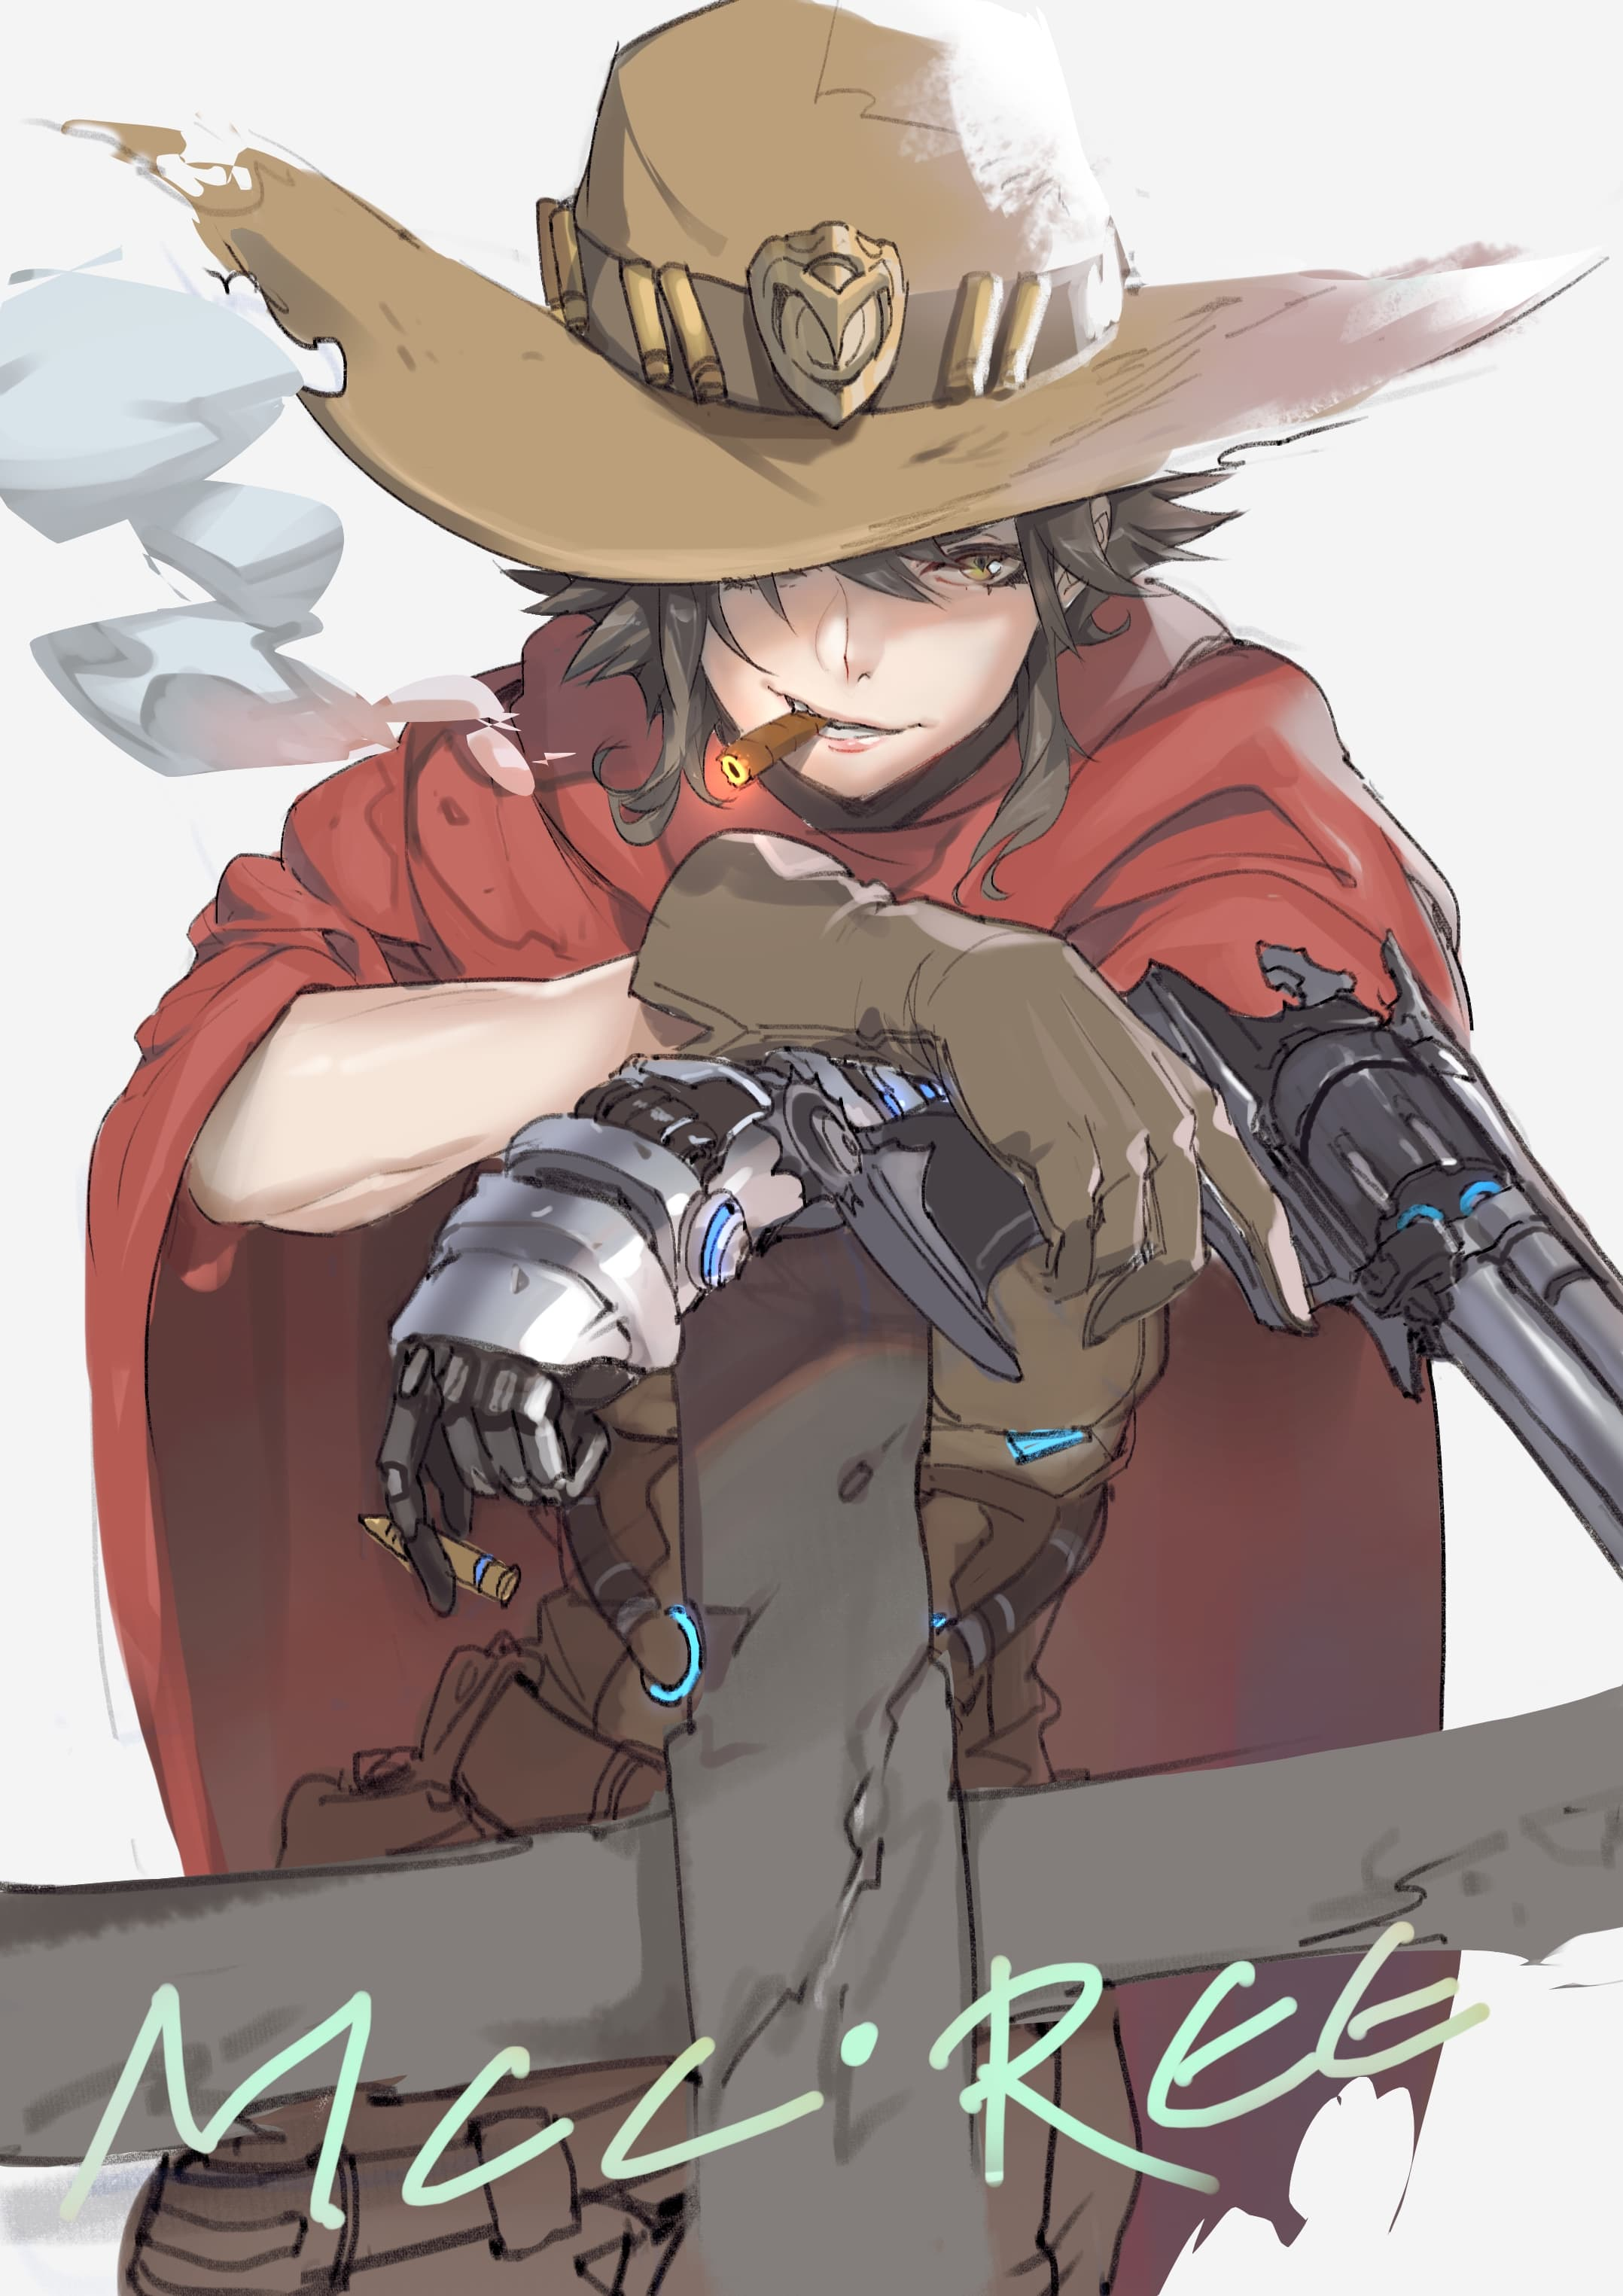 Overwatch mccree clipart clipart royalty free stock Overwatch mccree clipart - ClipartFest clipart royalty free stock